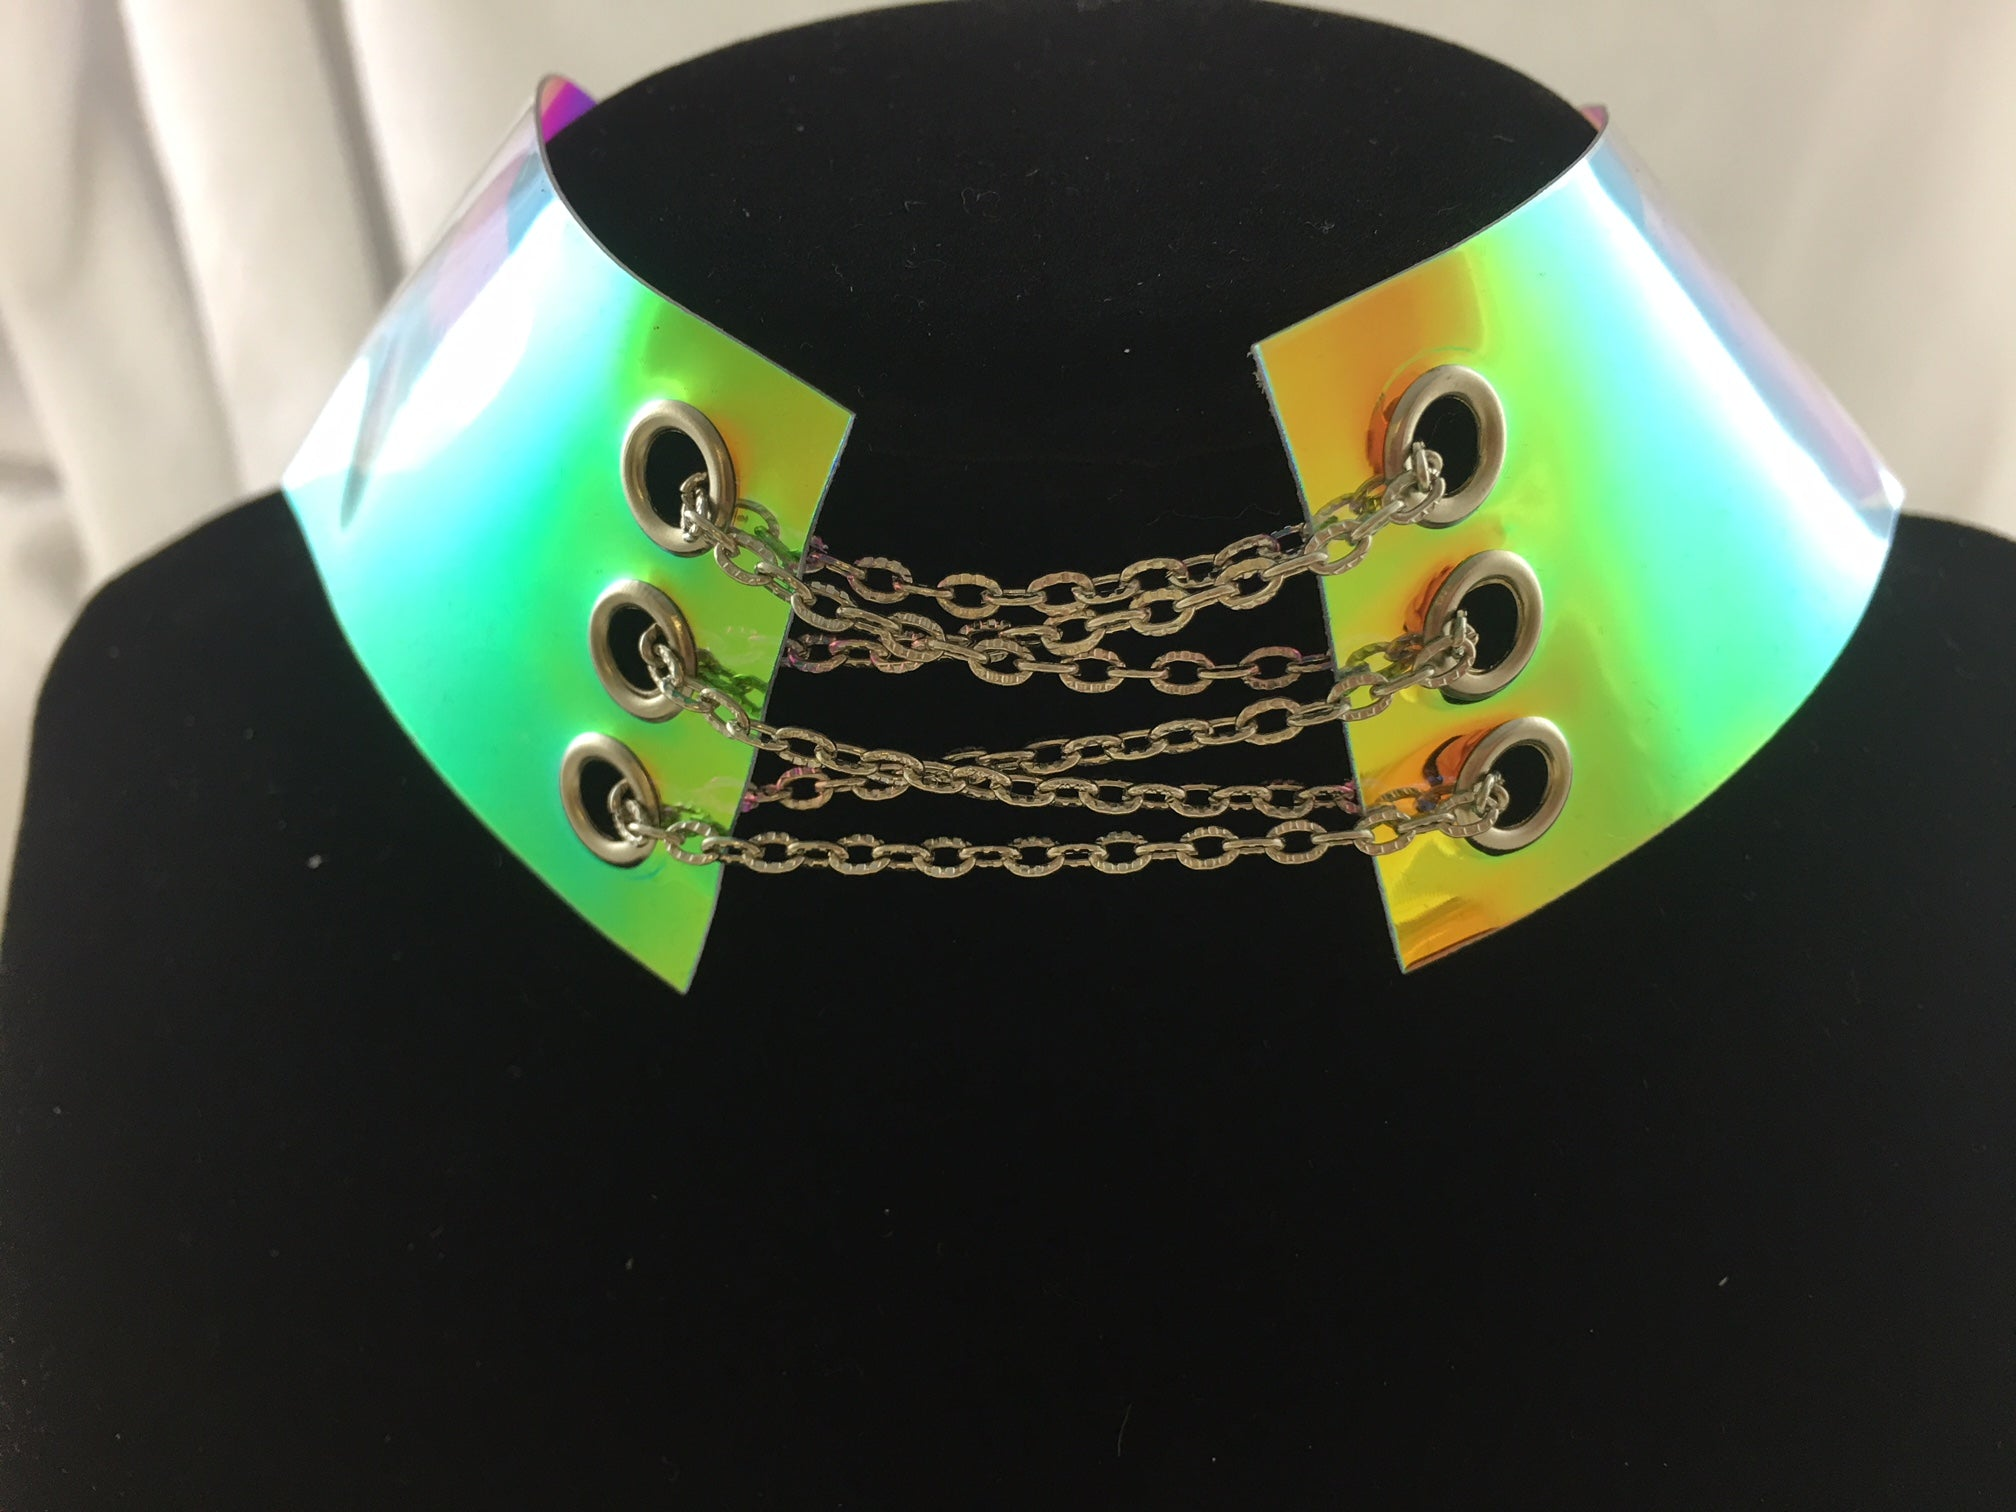 Choke Me in Chains Choker Necklace in Iridescent